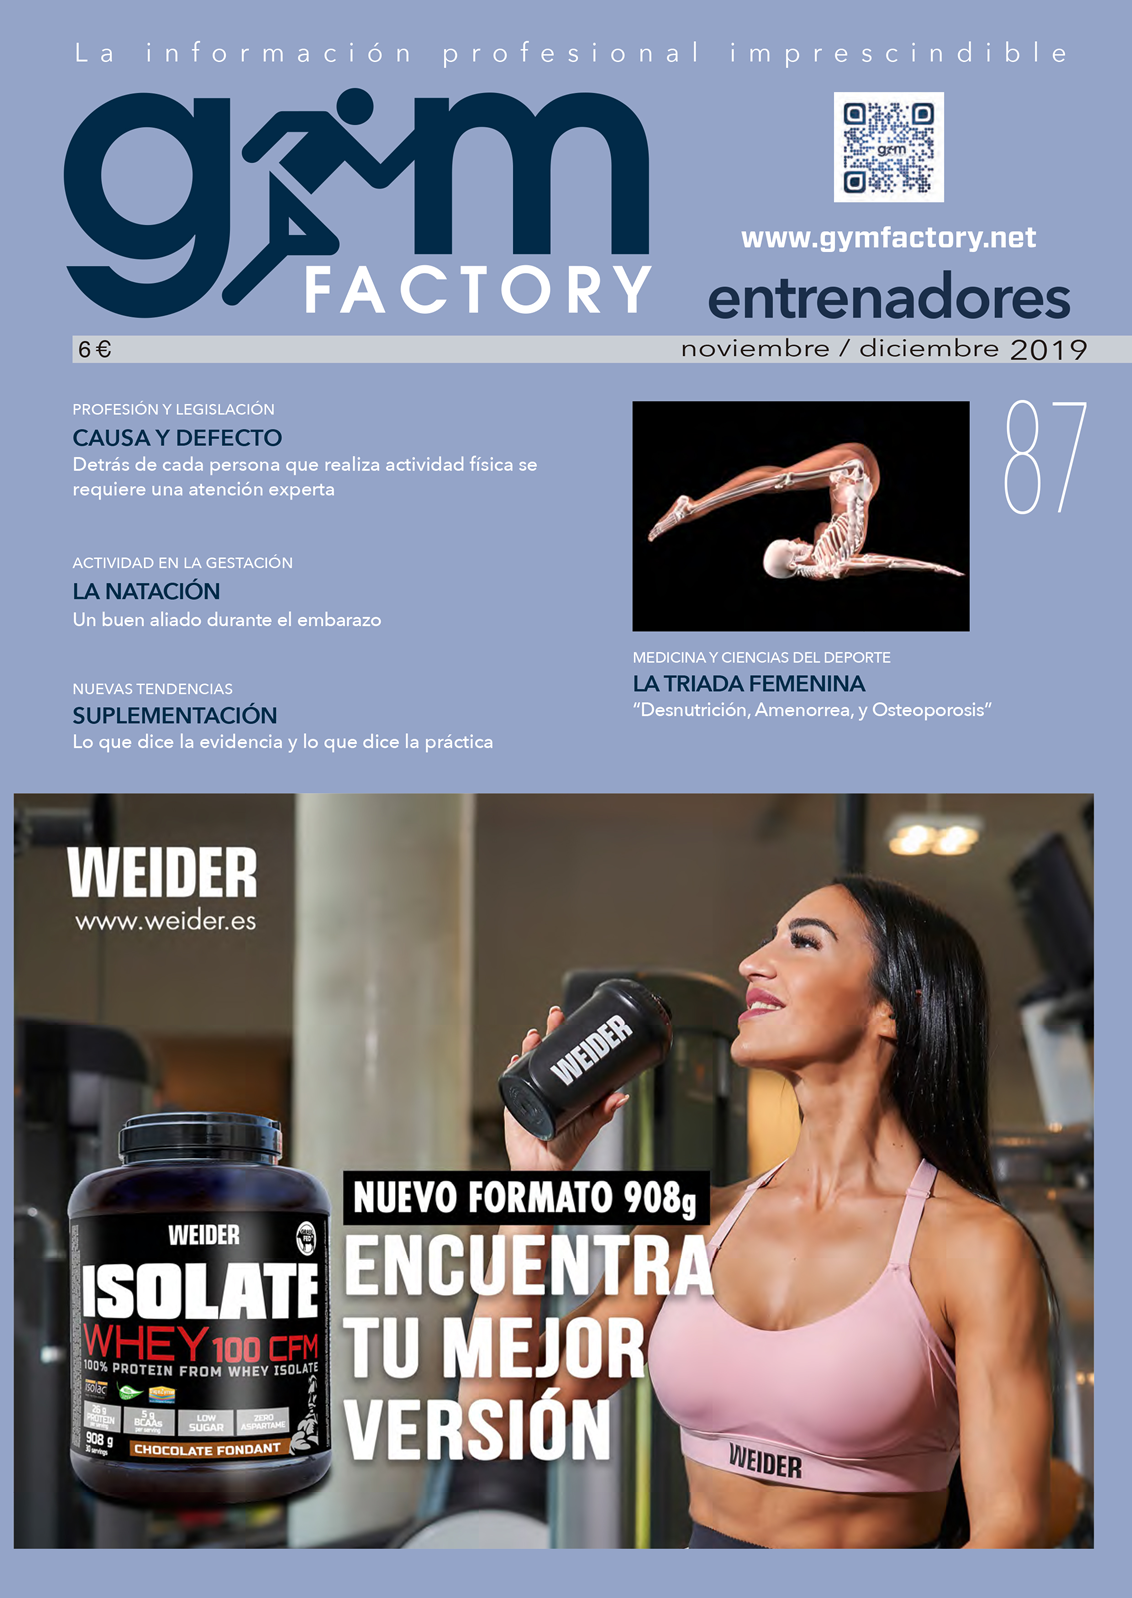 //www.gymfactory.net/wp-content/uploads/2019/11/gymfactory-87-entrenadores.png